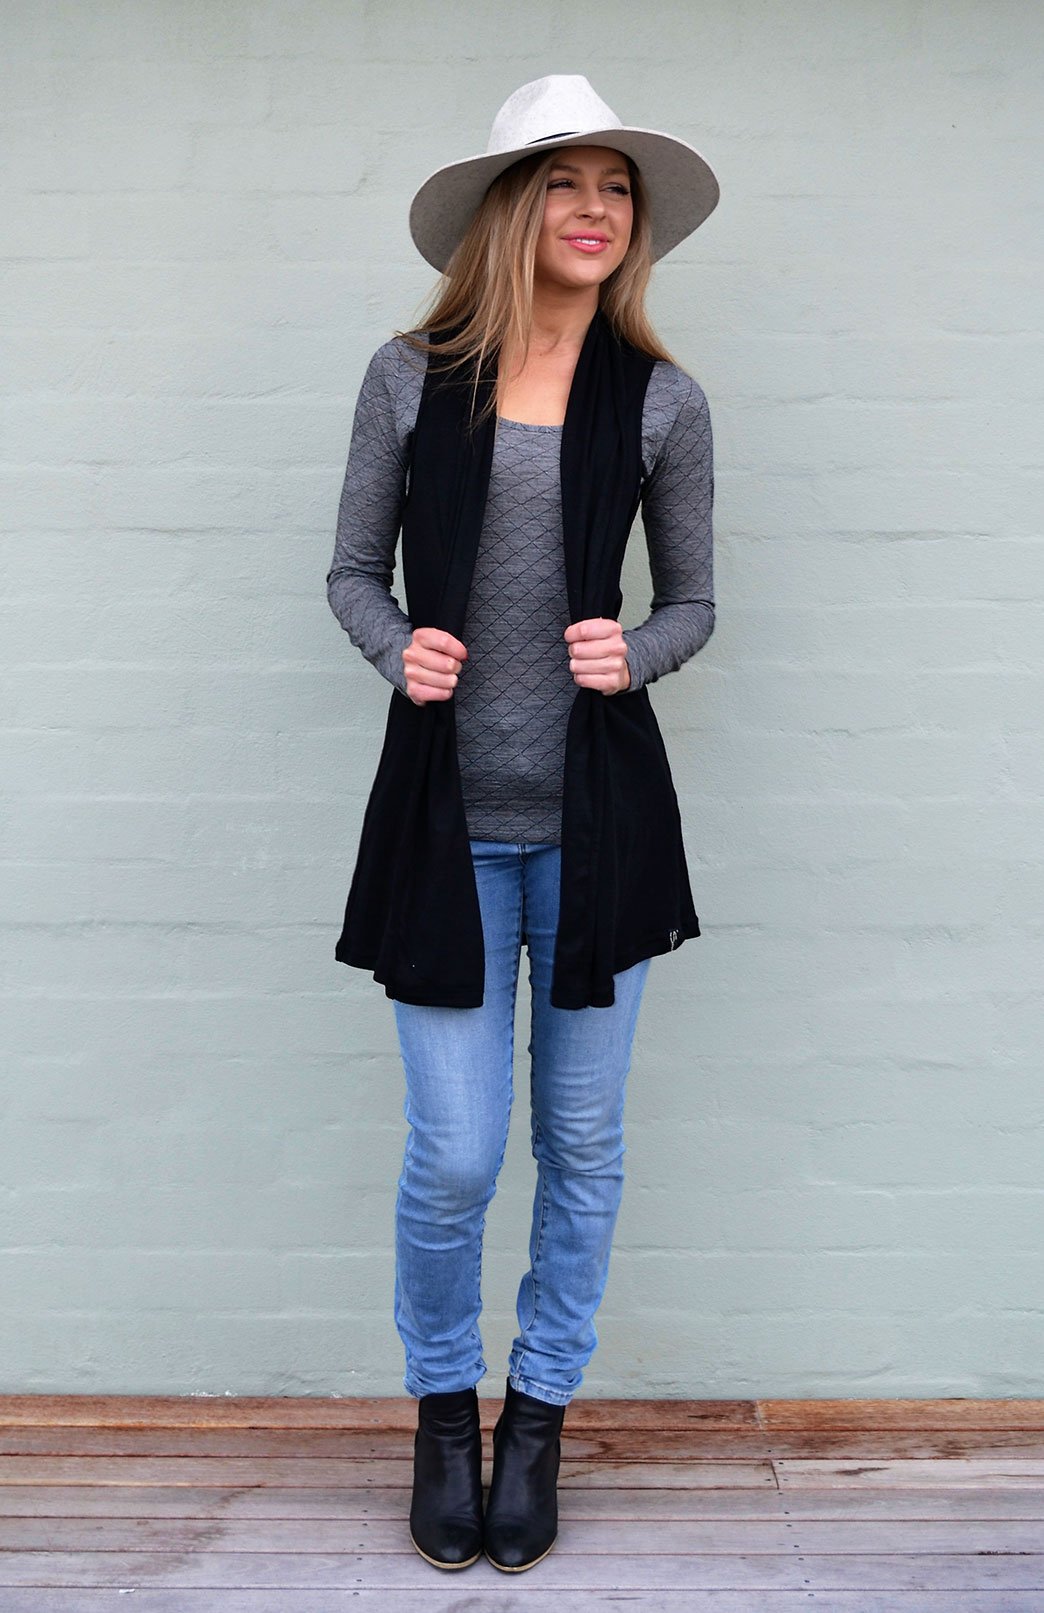 Sleeveless Drape Cardigan - Women's Black Merino Wool Sleeveless Drape Cardigan with no buttons or fastenings - Smitten Merino Tasmania Australia